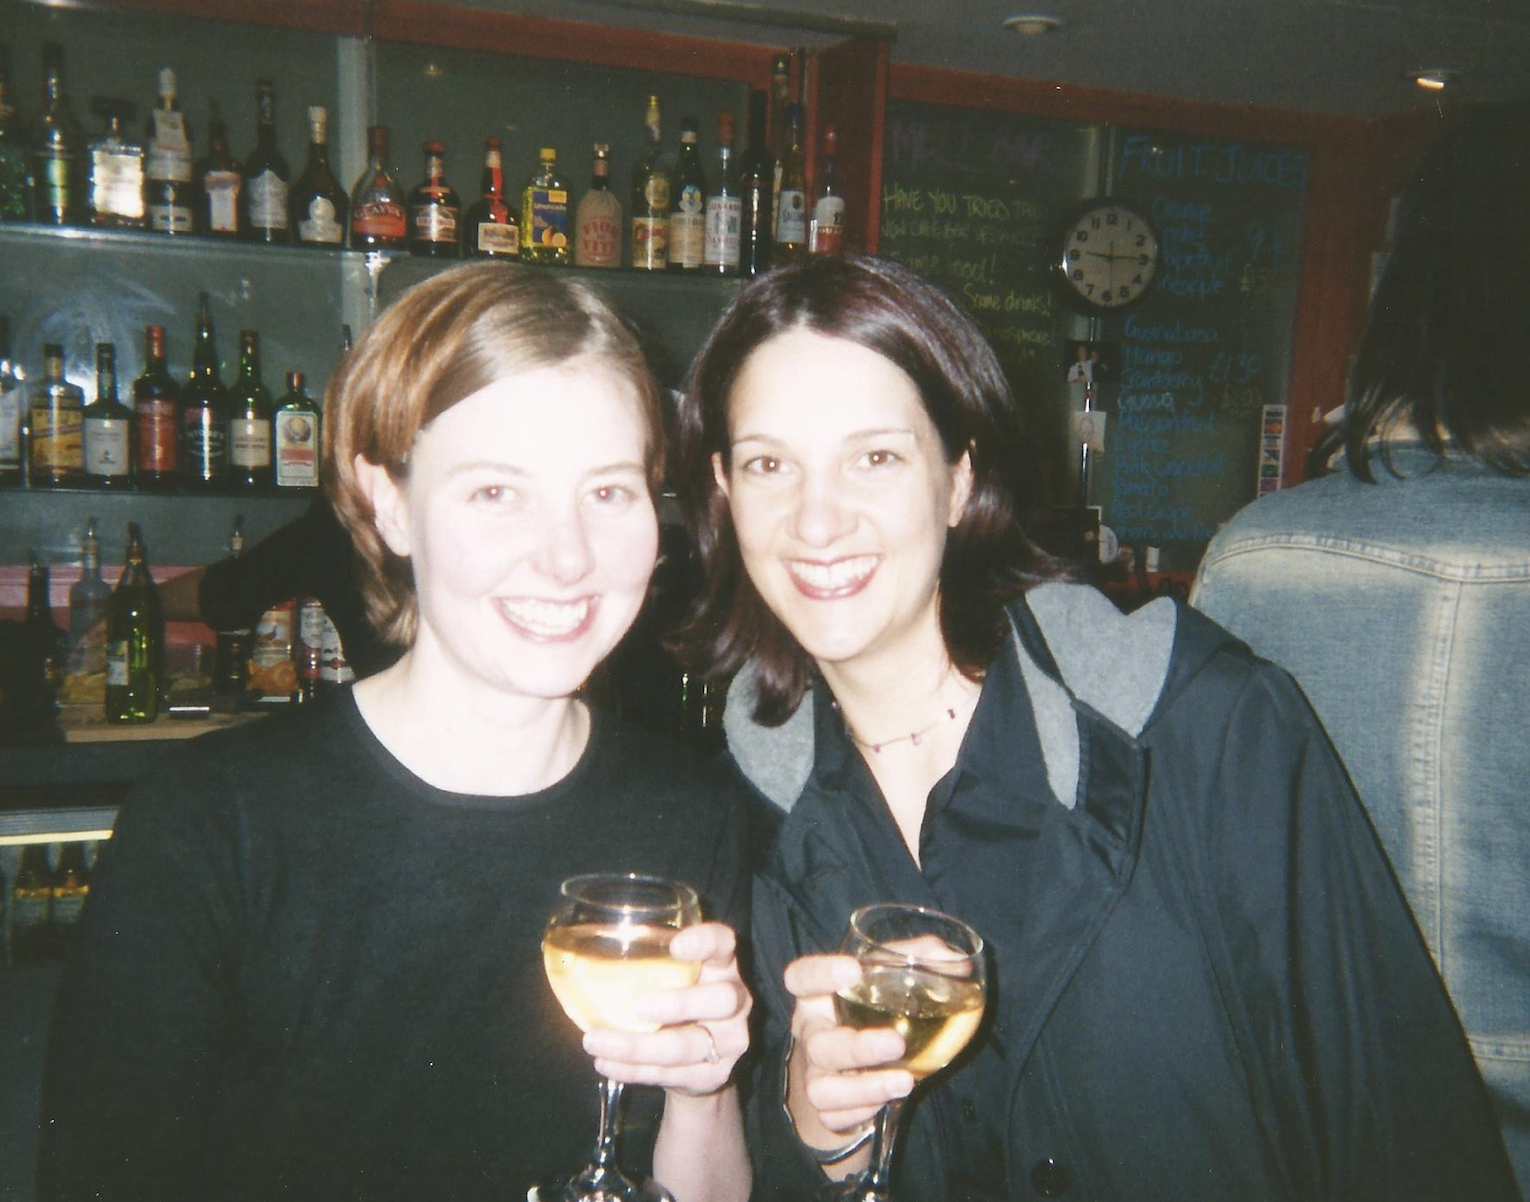 Above: A 'Cheers' from Sara Burford and Sarah Fitzgerald, in pre social-distanced times.